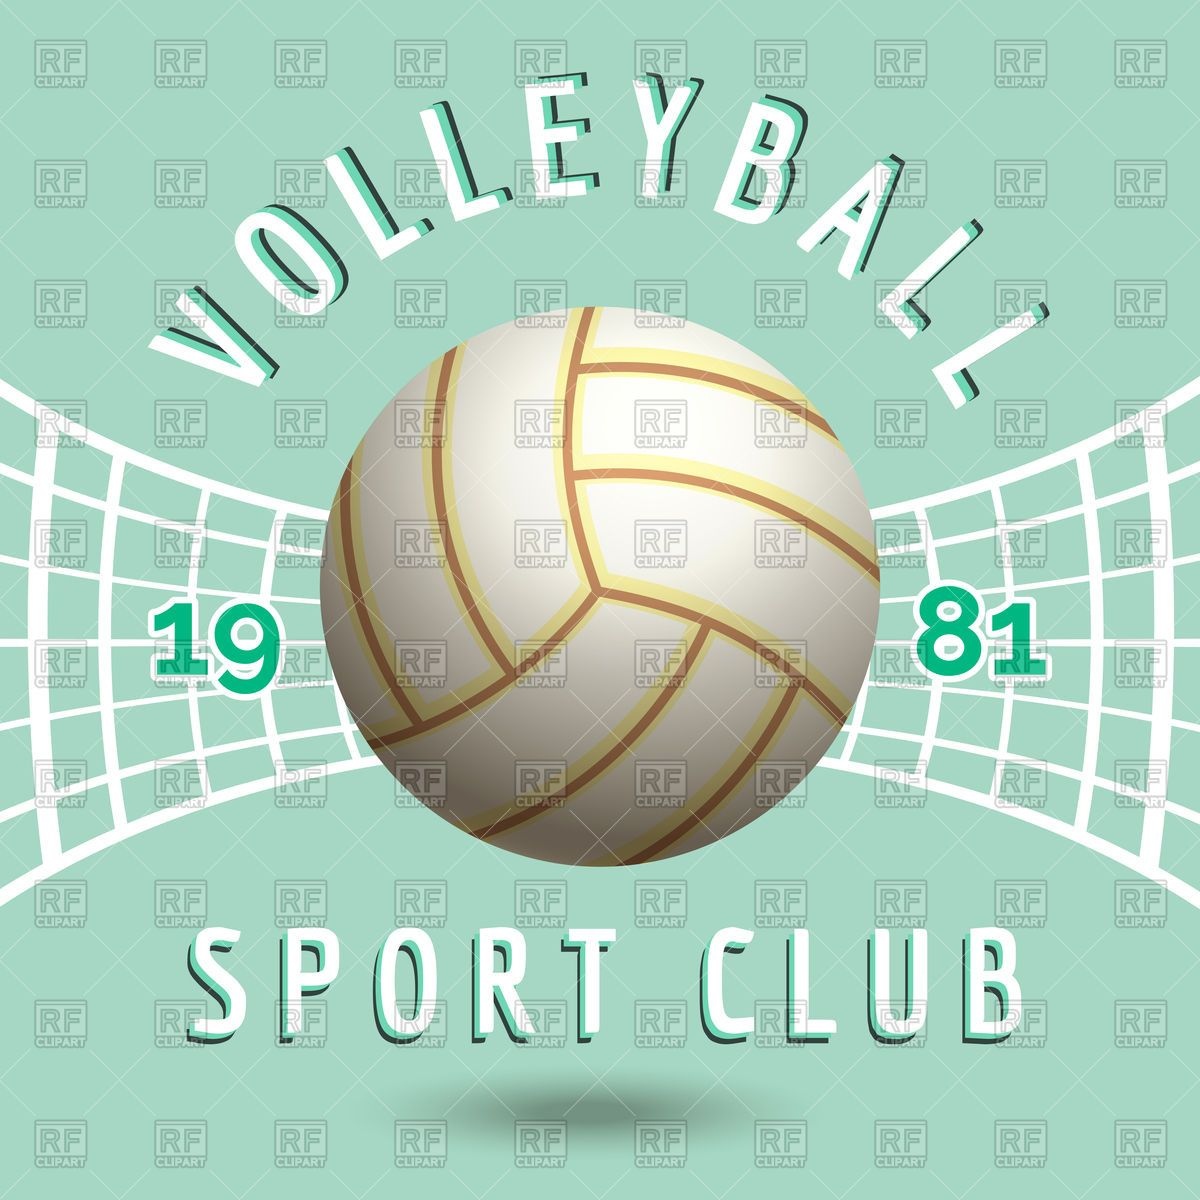 Download Royalty Free Volleyball Sport Team Emblem Vector Image 125585 From Rfclipart Illustrations Vect Team Emblems Free Vector Illustration Vector Artwork